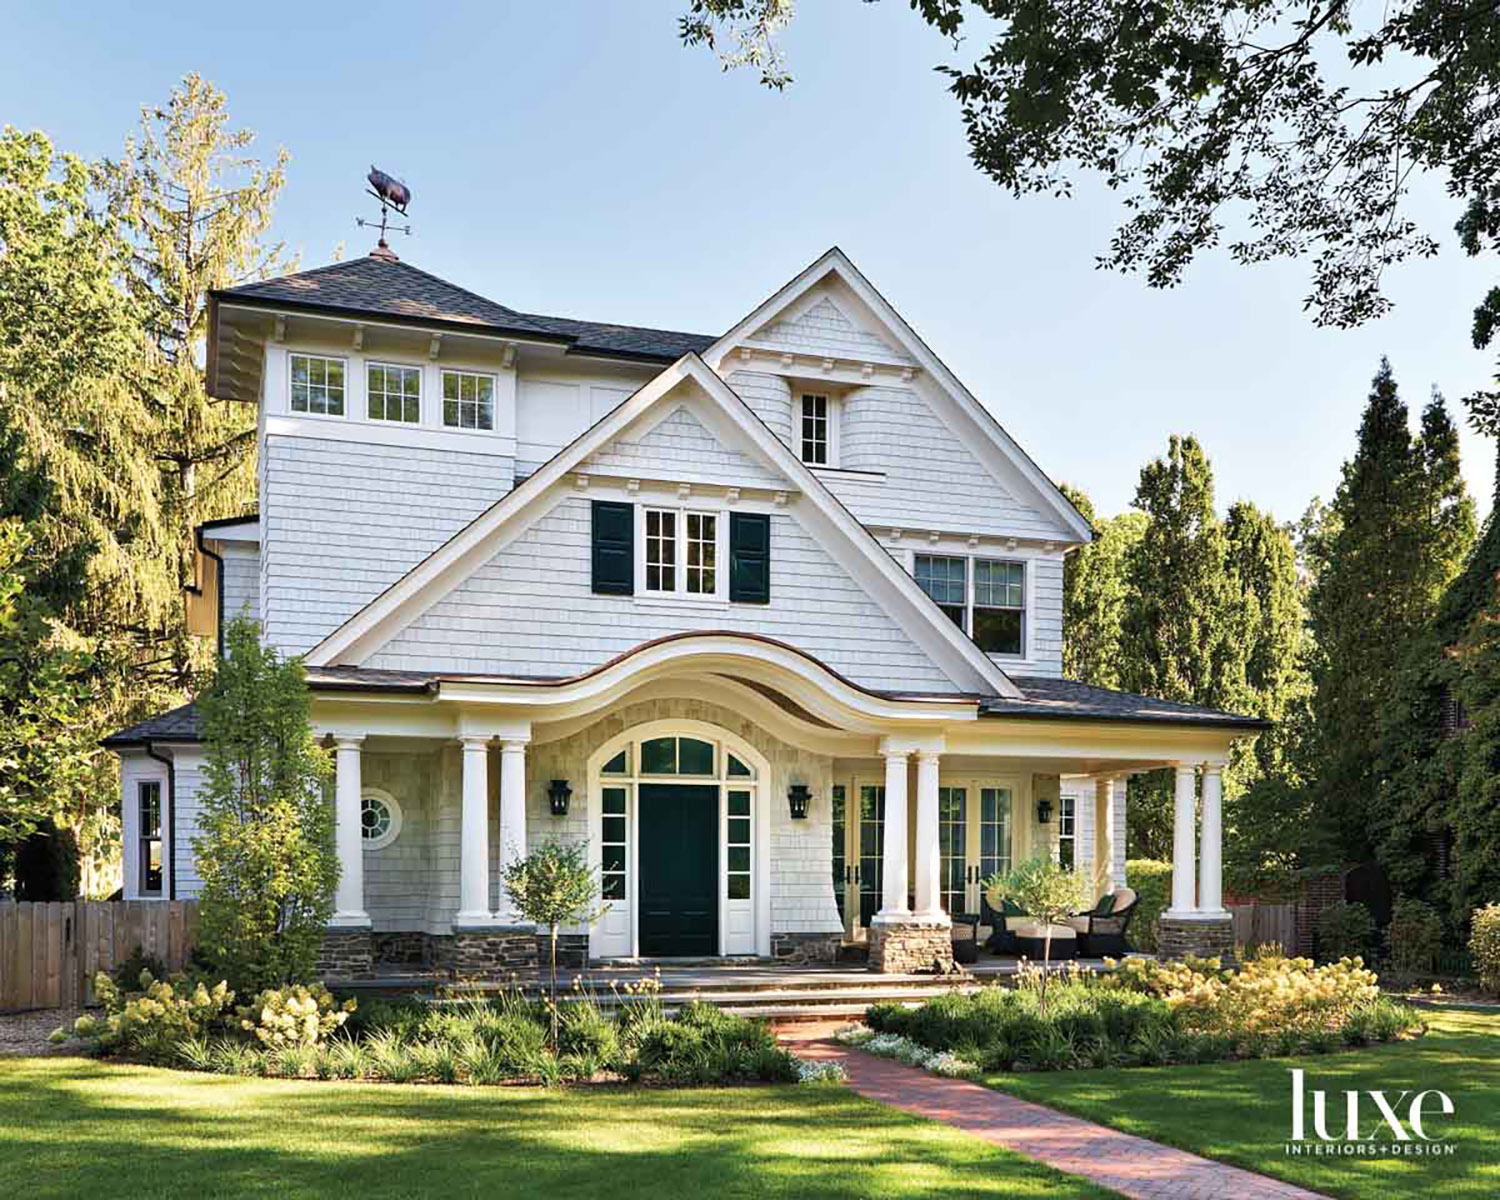 A Wilmette Home Delivers On A Wish For A More Laid-Back Lifestyle {A Wilmette Home Delivers On A Wish For A More Laid-Back Lifestyle} – English